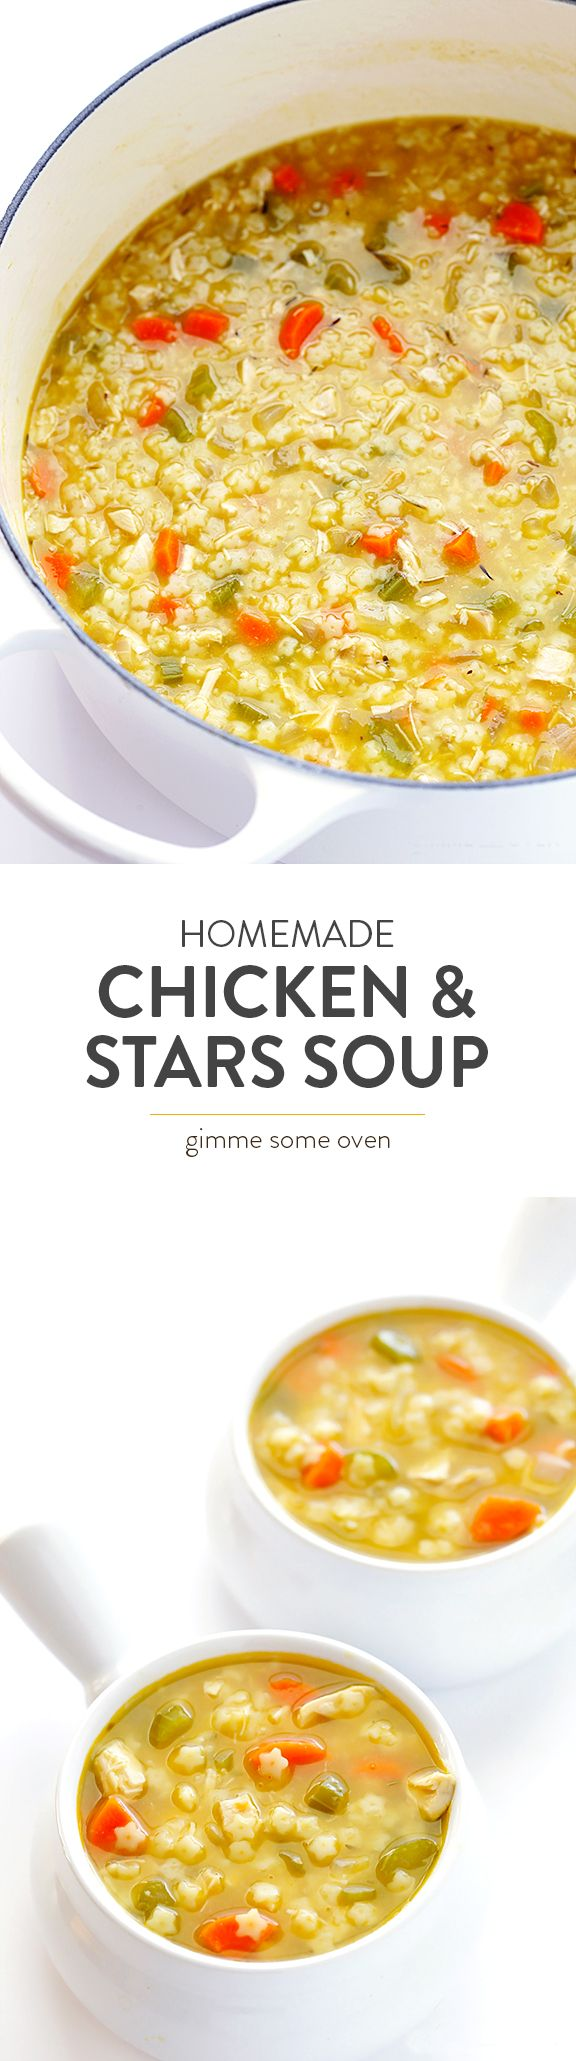 Learn how to make Chicken & Stars Soup homemade with this easy recipe!! It's so delicious, and way better than the canned stuff. | gimmesomeoven.com